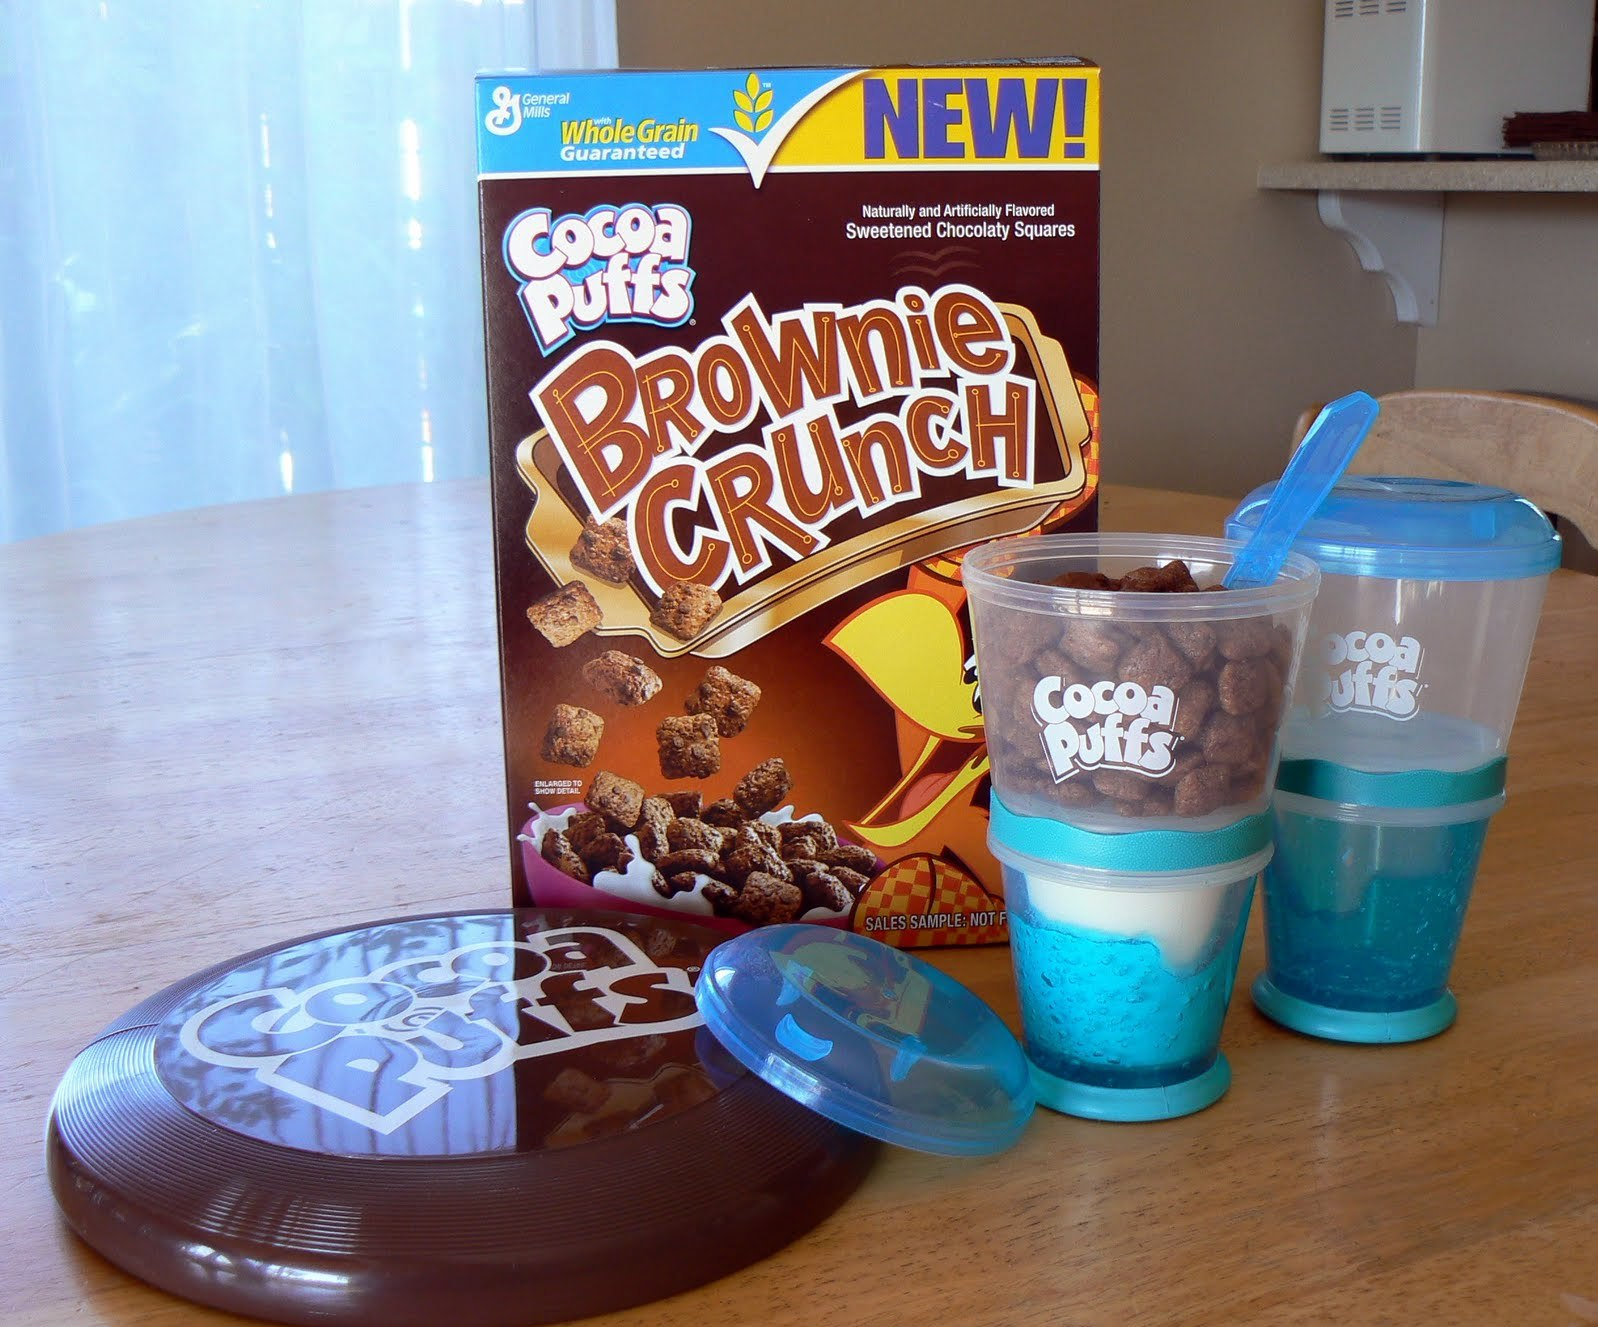 Cocoa Puffs Cereals Giveaways from General Mills